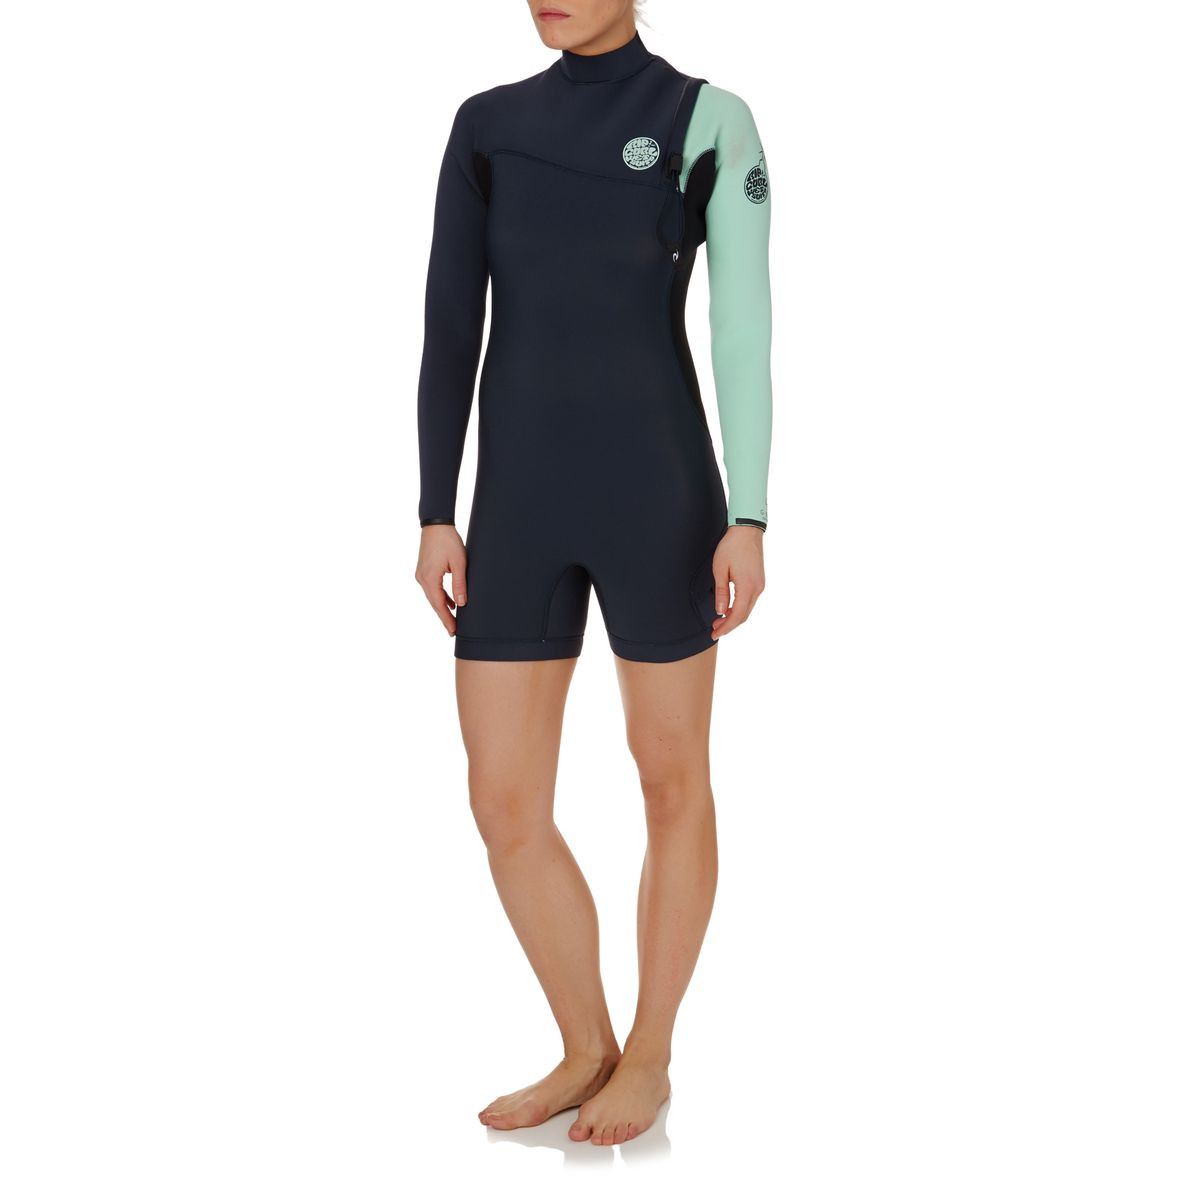 Rip Curl Womens G-bomb 2mm 2017 Zipperless Long Sleeve Shorty Wetsuit - Blue